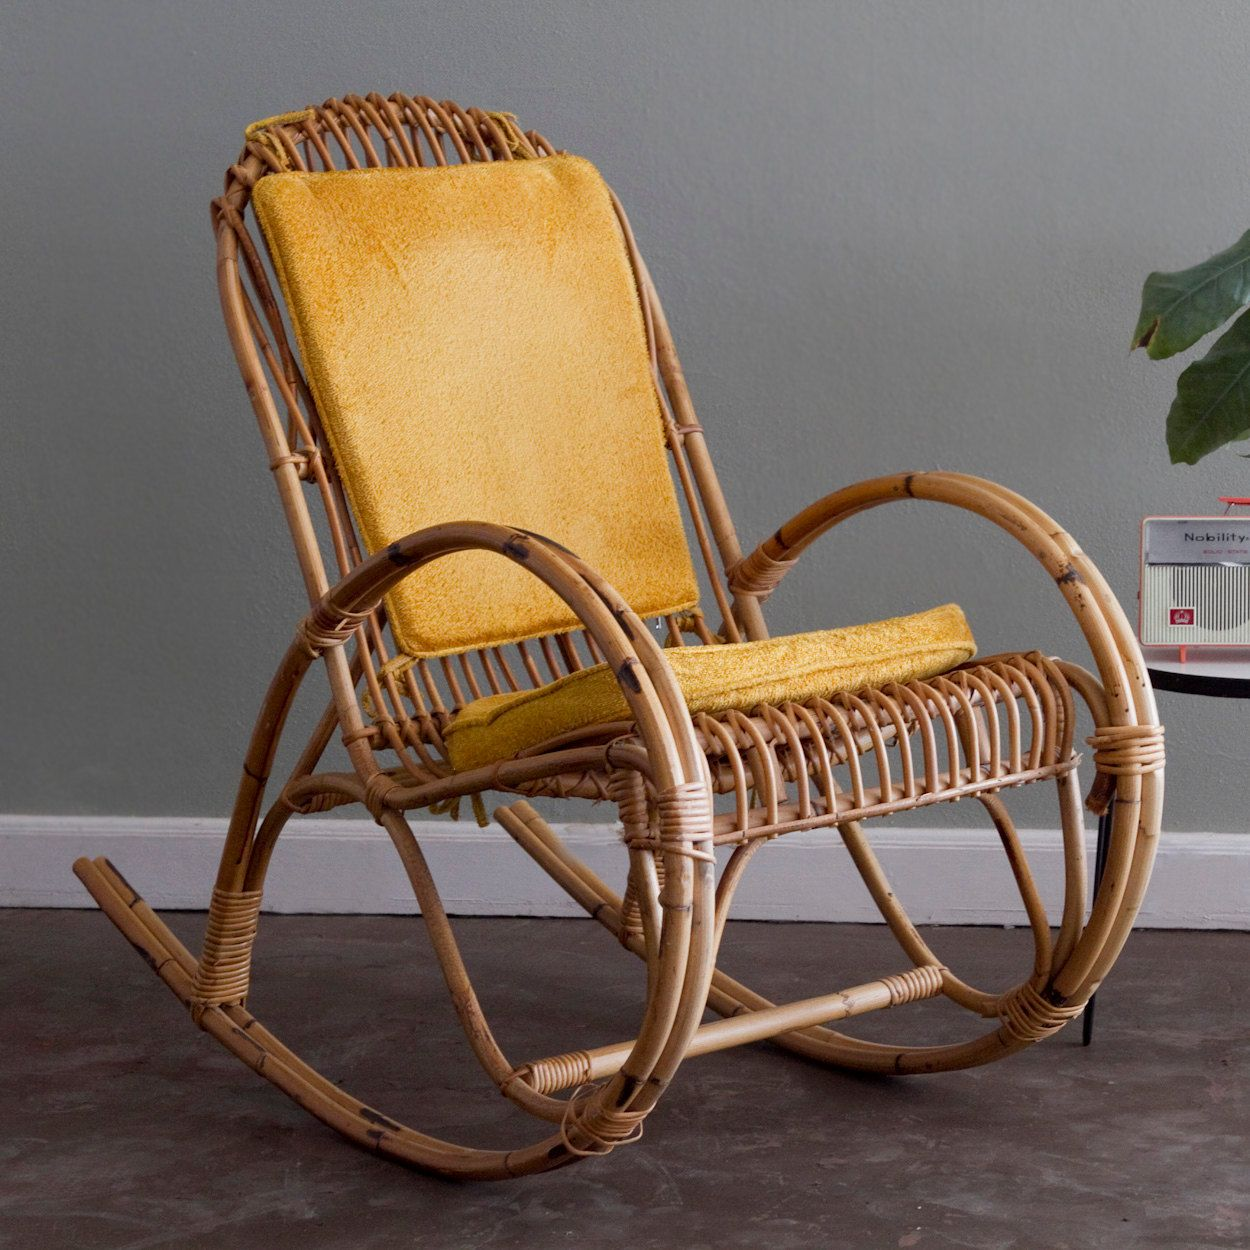 Etsy Vintage Bamboo Furniture: SALE: Franco Albini Whicker Rattan Rocking Chair With